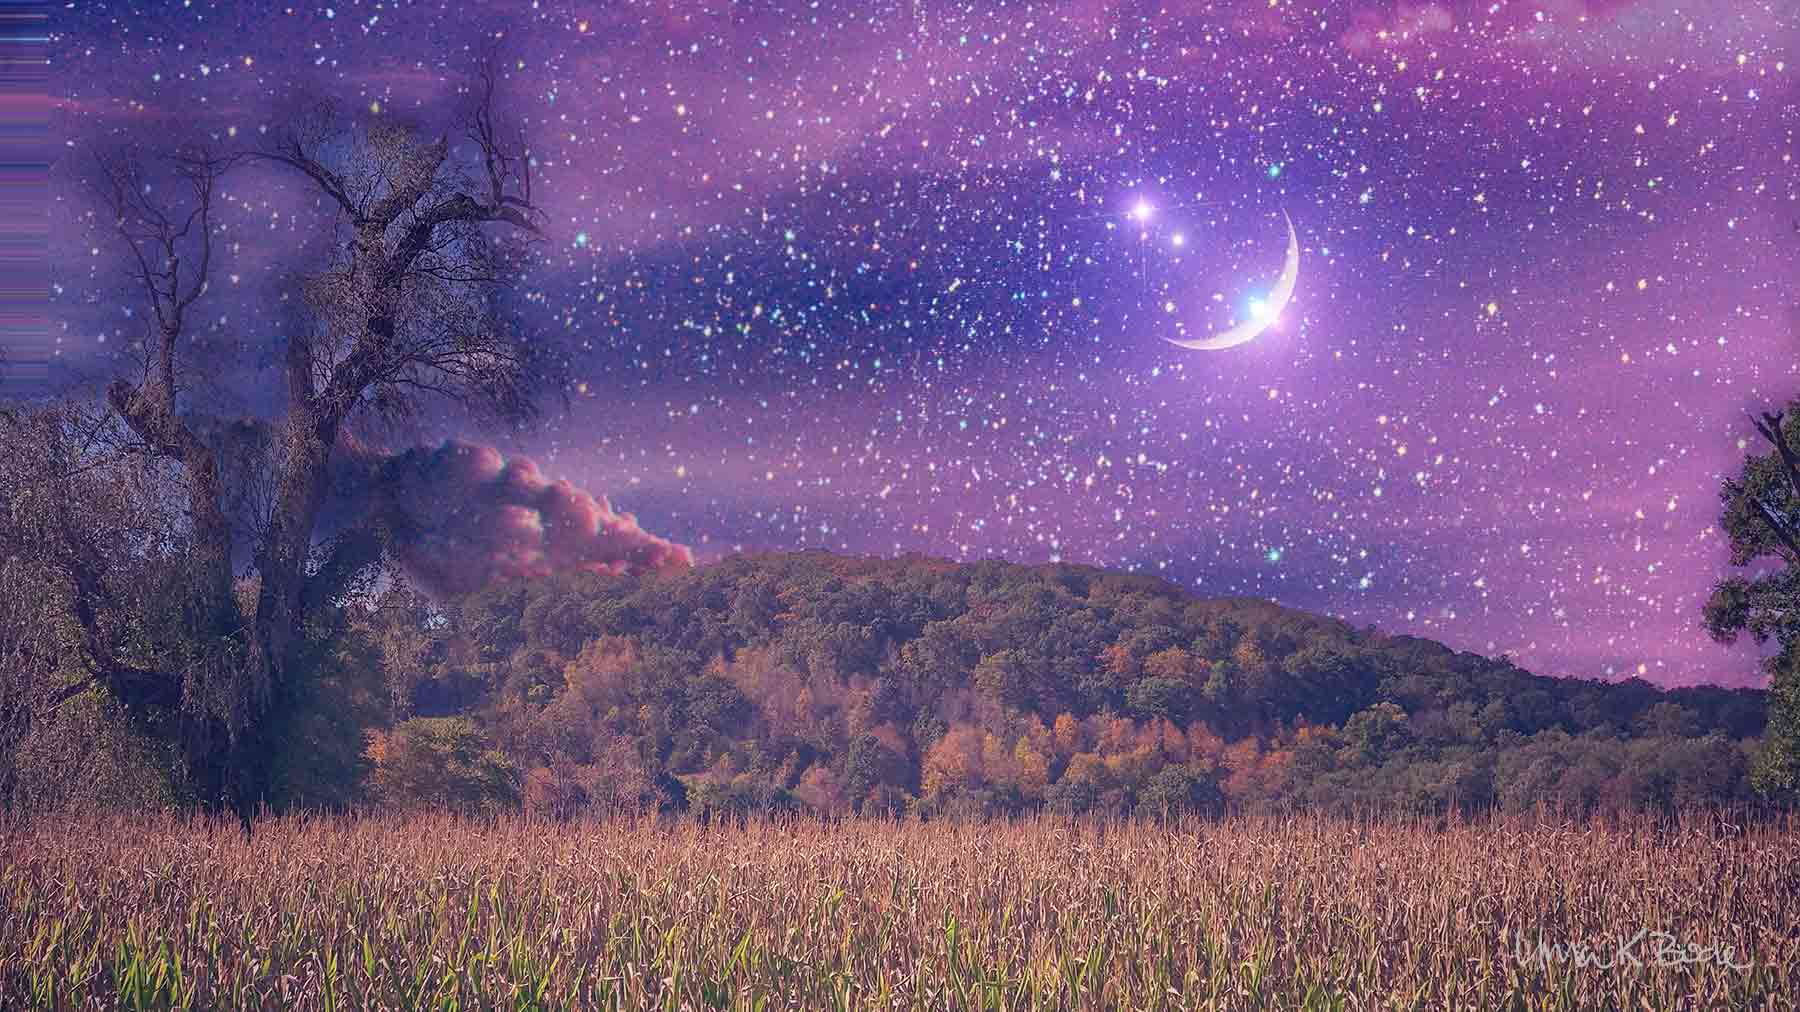 Ethereal purple night sky with stars and moon, cornfield and hills